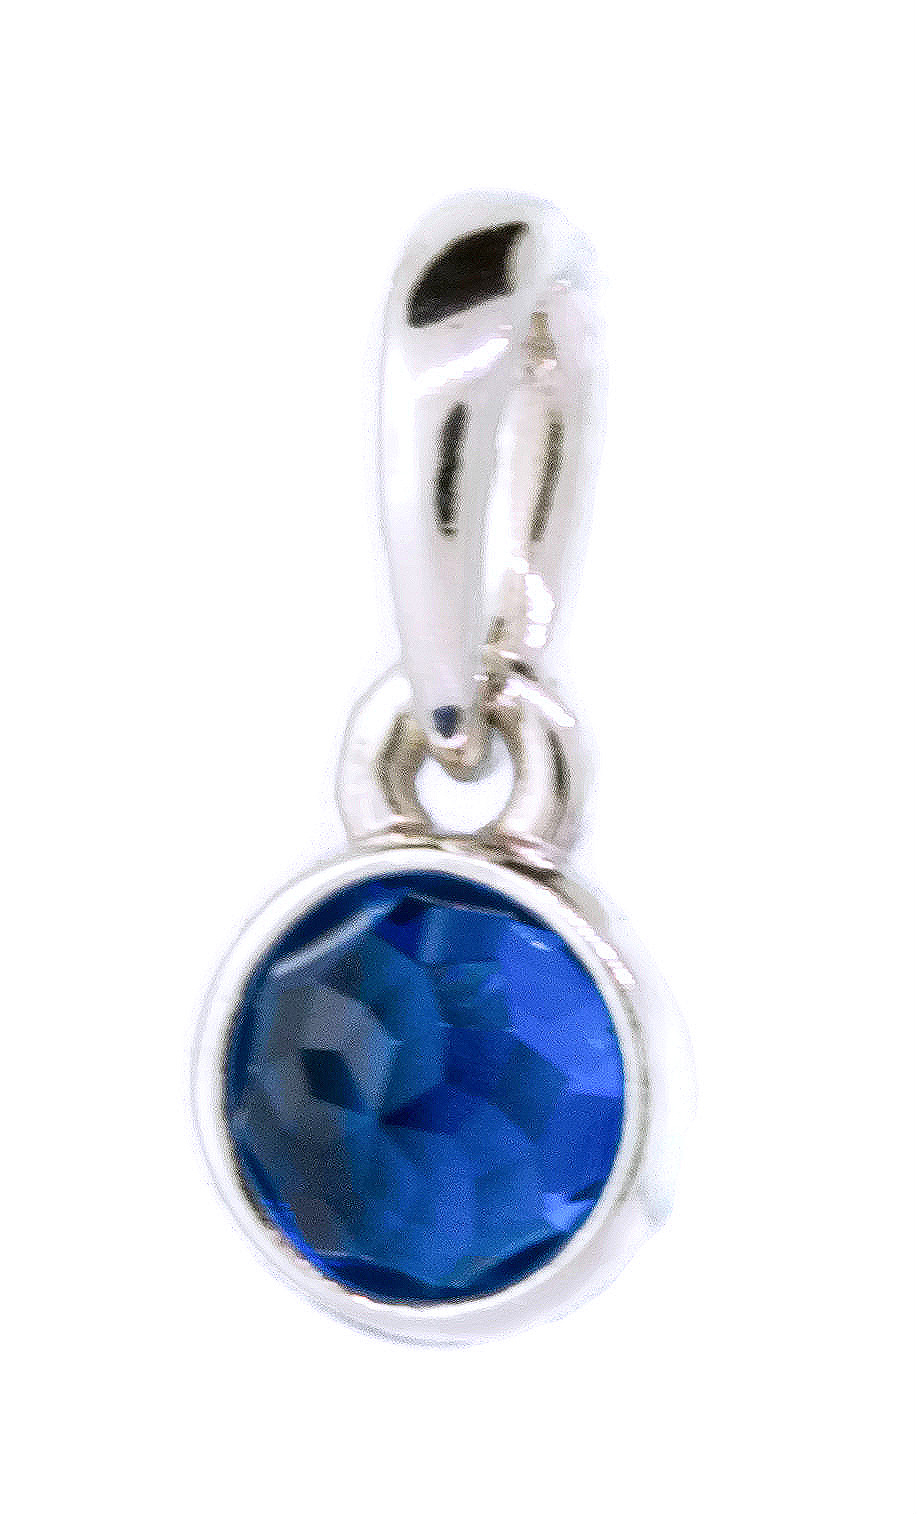 Authentic December Droplet Pendant, London Blue Crystal 390396nlb Intended For Latest London Blue Crystal December Droplet Pendant Necklaces (View 3 of 25)